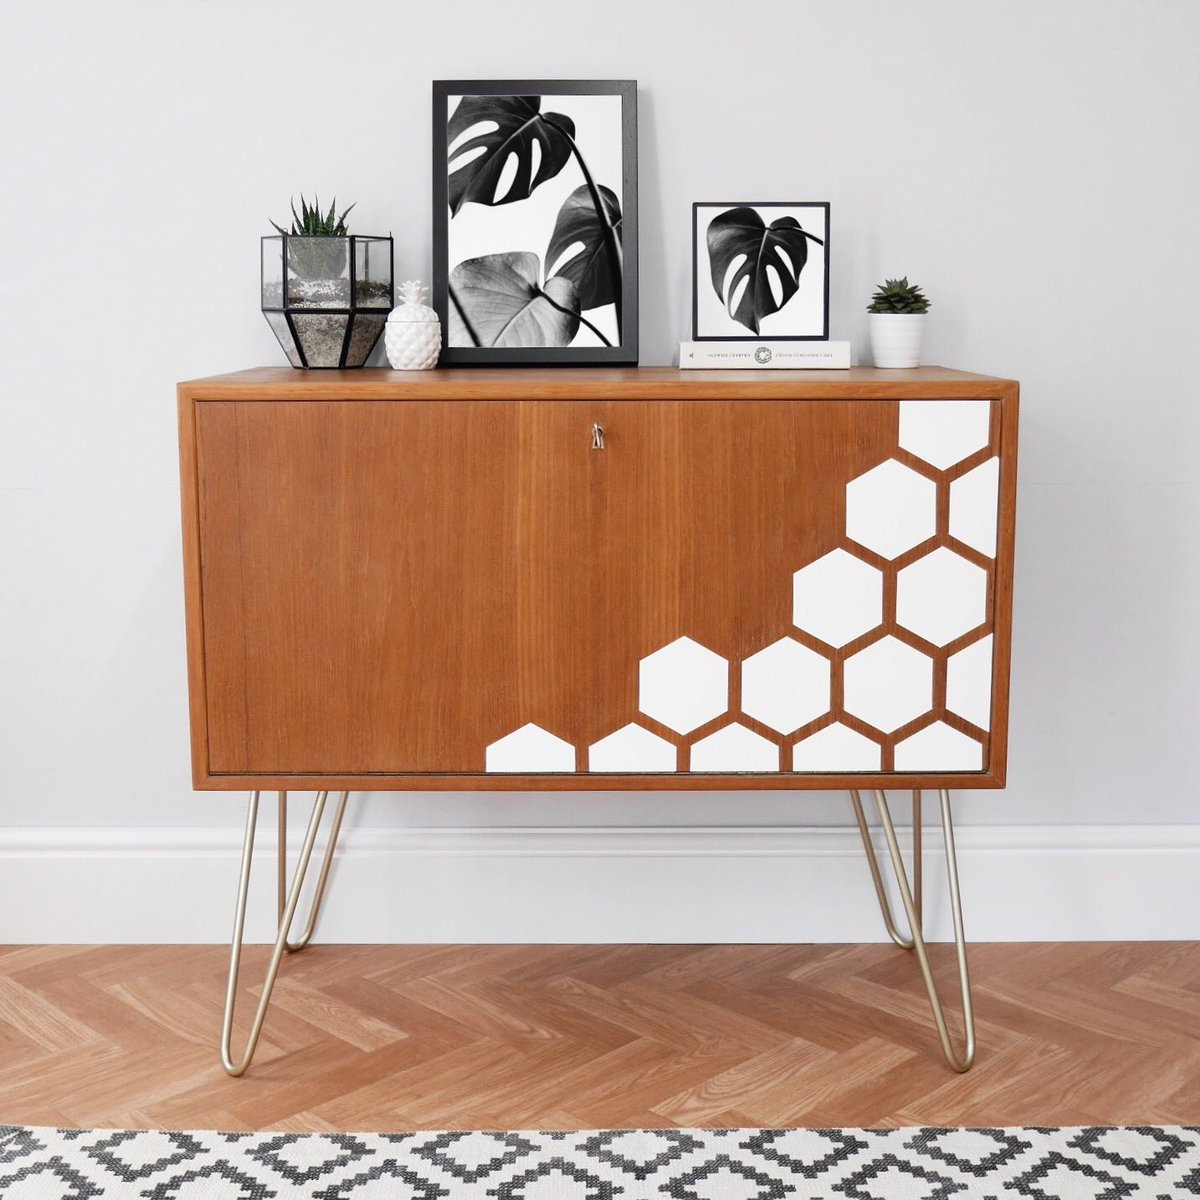 This might be my new favourite  #upcycled #midcentury #vintage #etsyshop<br>http://pic.twitter.com/k4mHAmUFxs